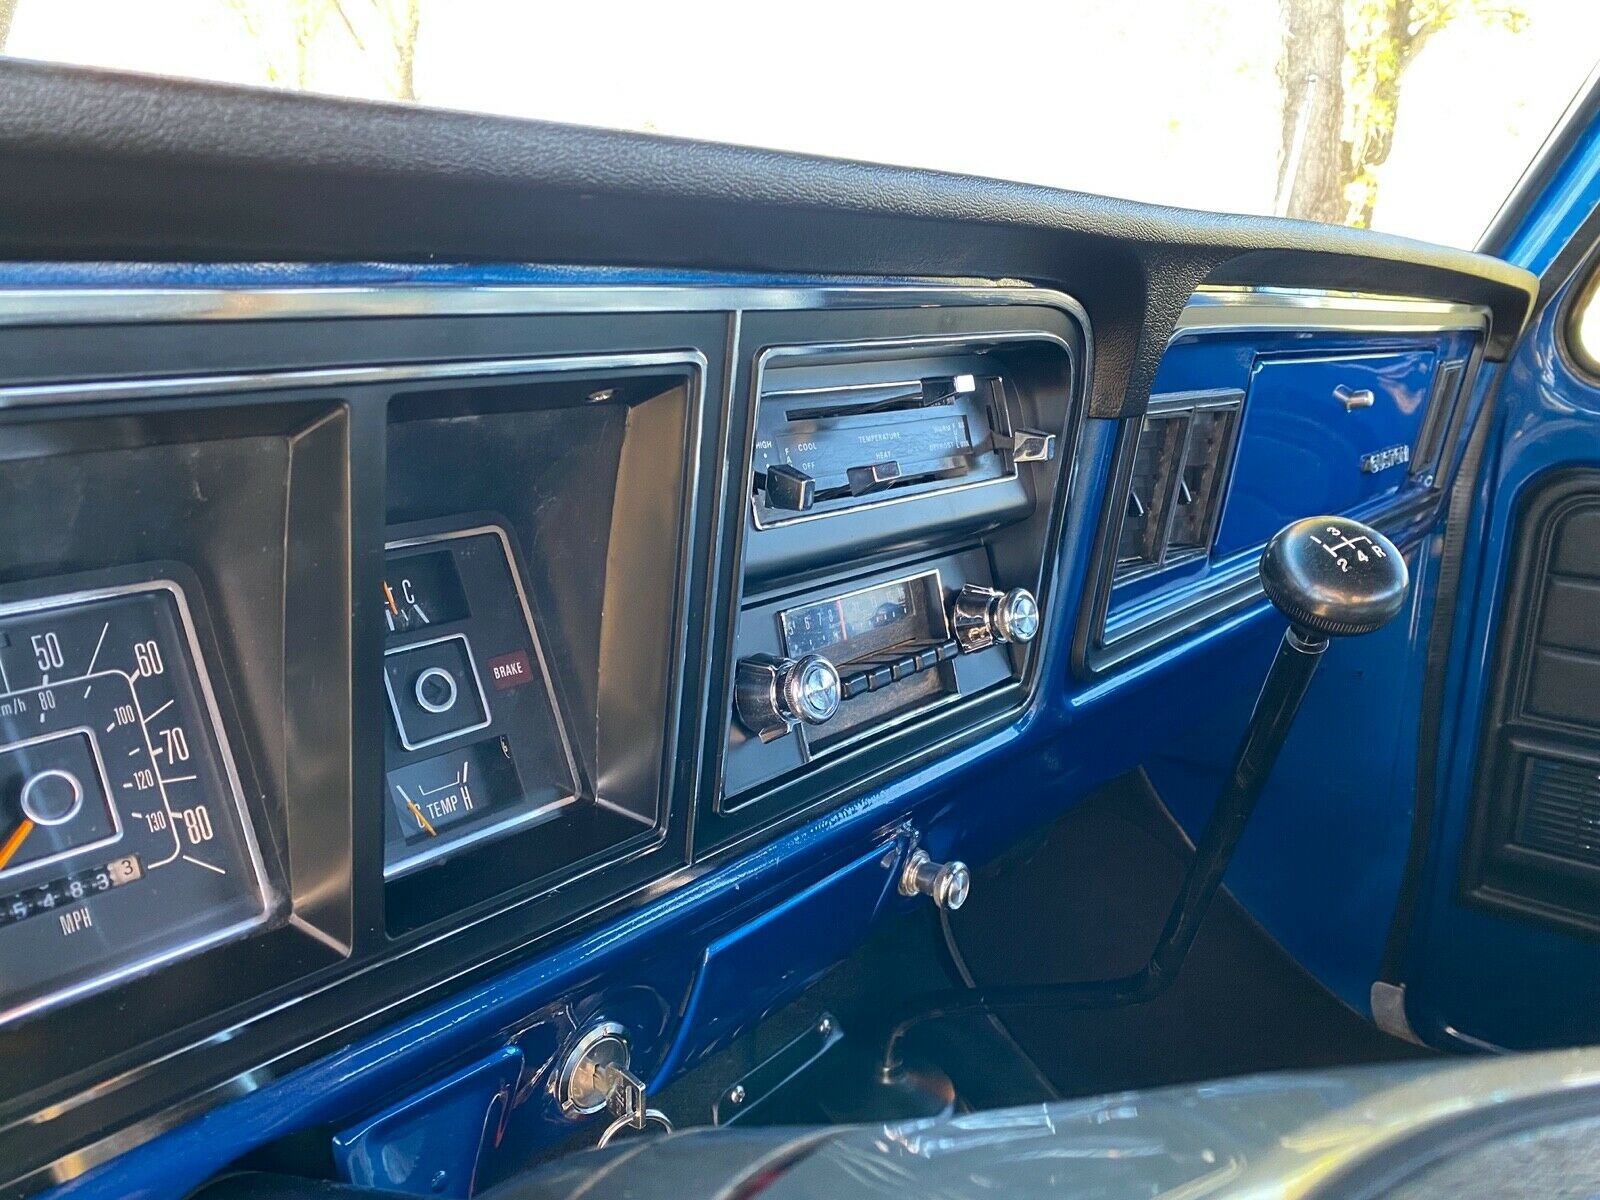 1979 Ford F250 Crewcab Factory 4x4 Completely Restored 16.jpg